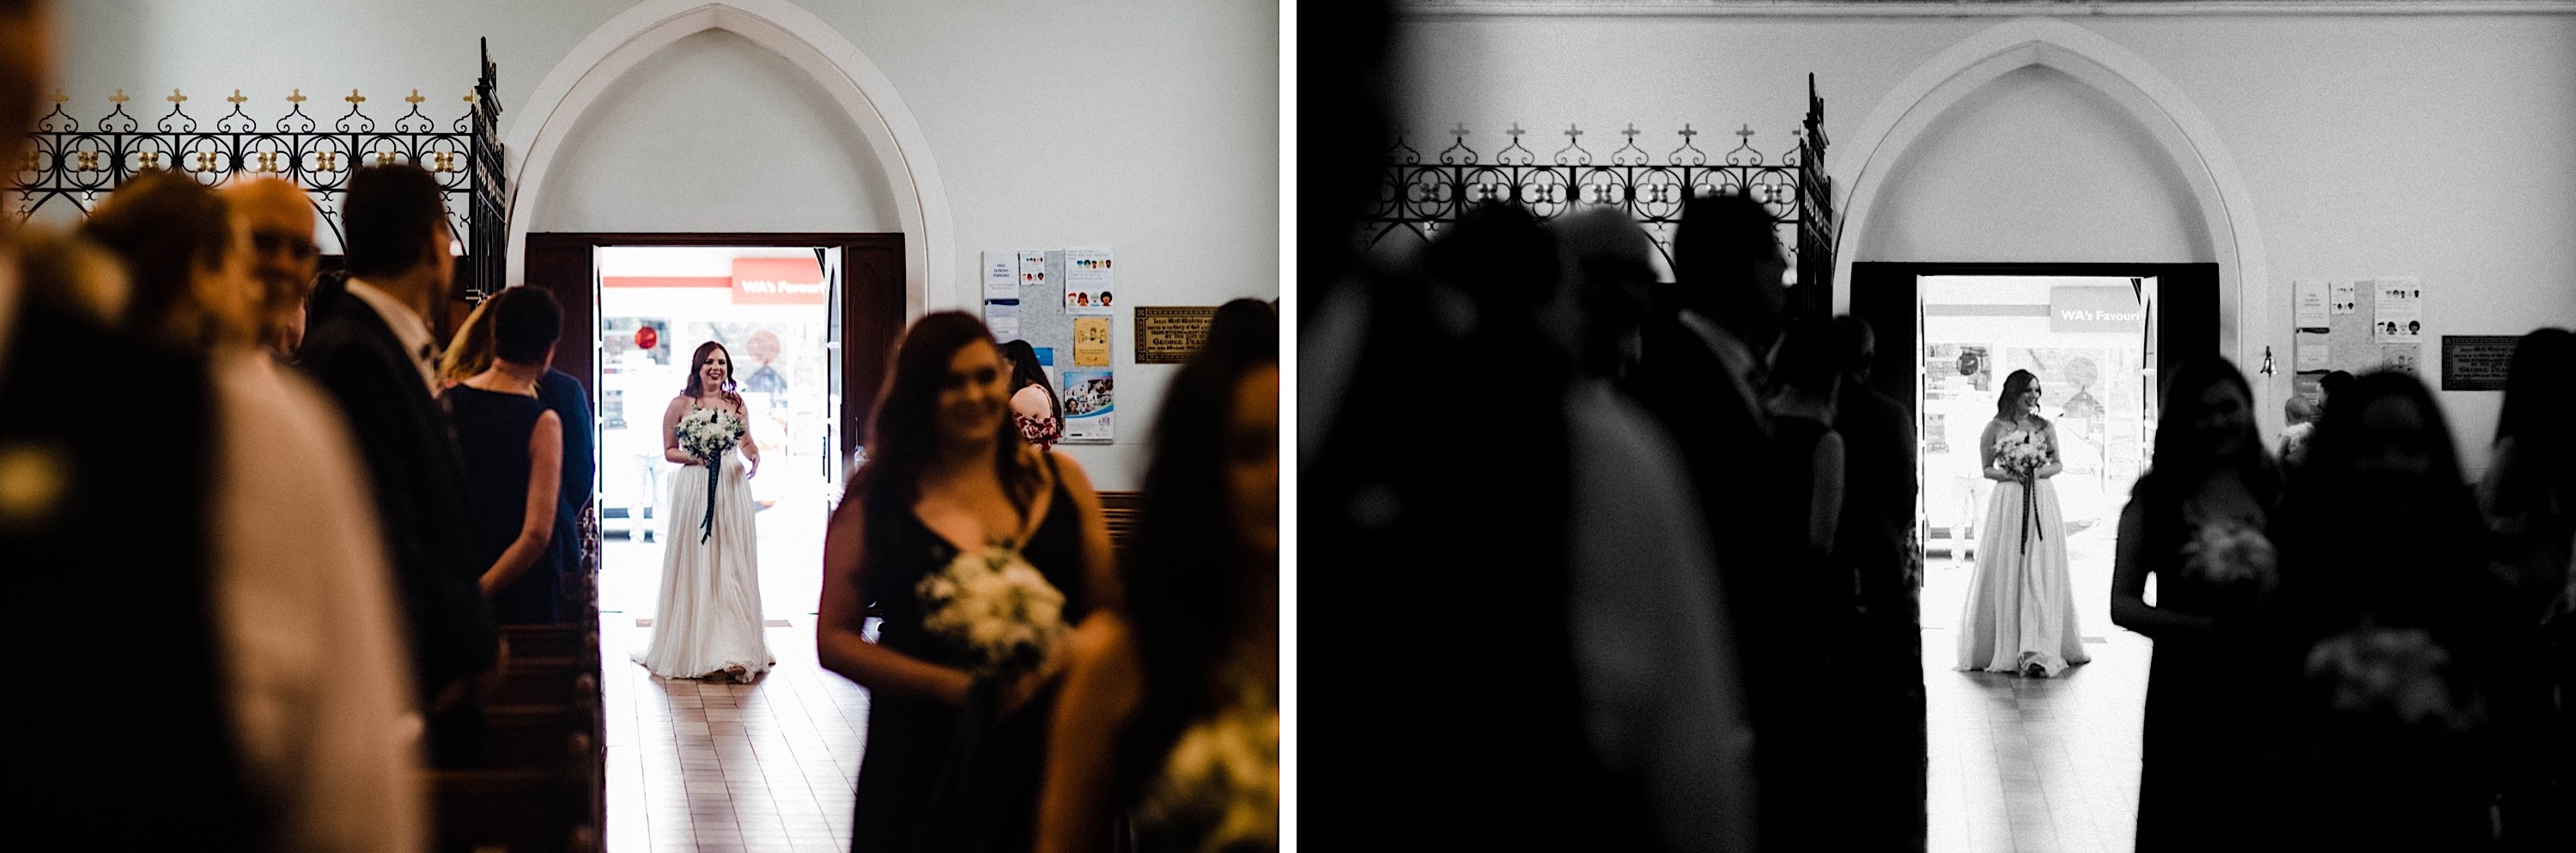 Two documentary wedding photos side-by-side of the bride entering St John's Anglican Church for her wedding ceremony.